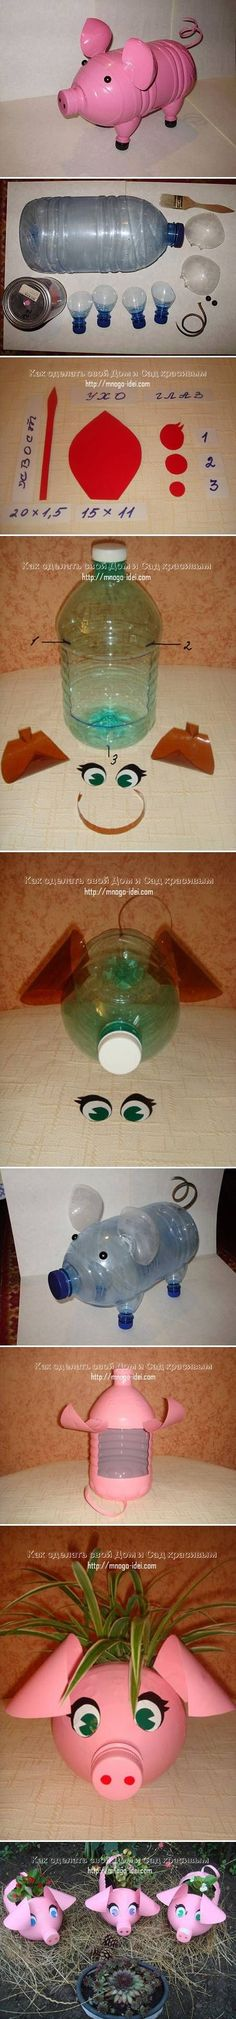 DIY Plastic Bottle: